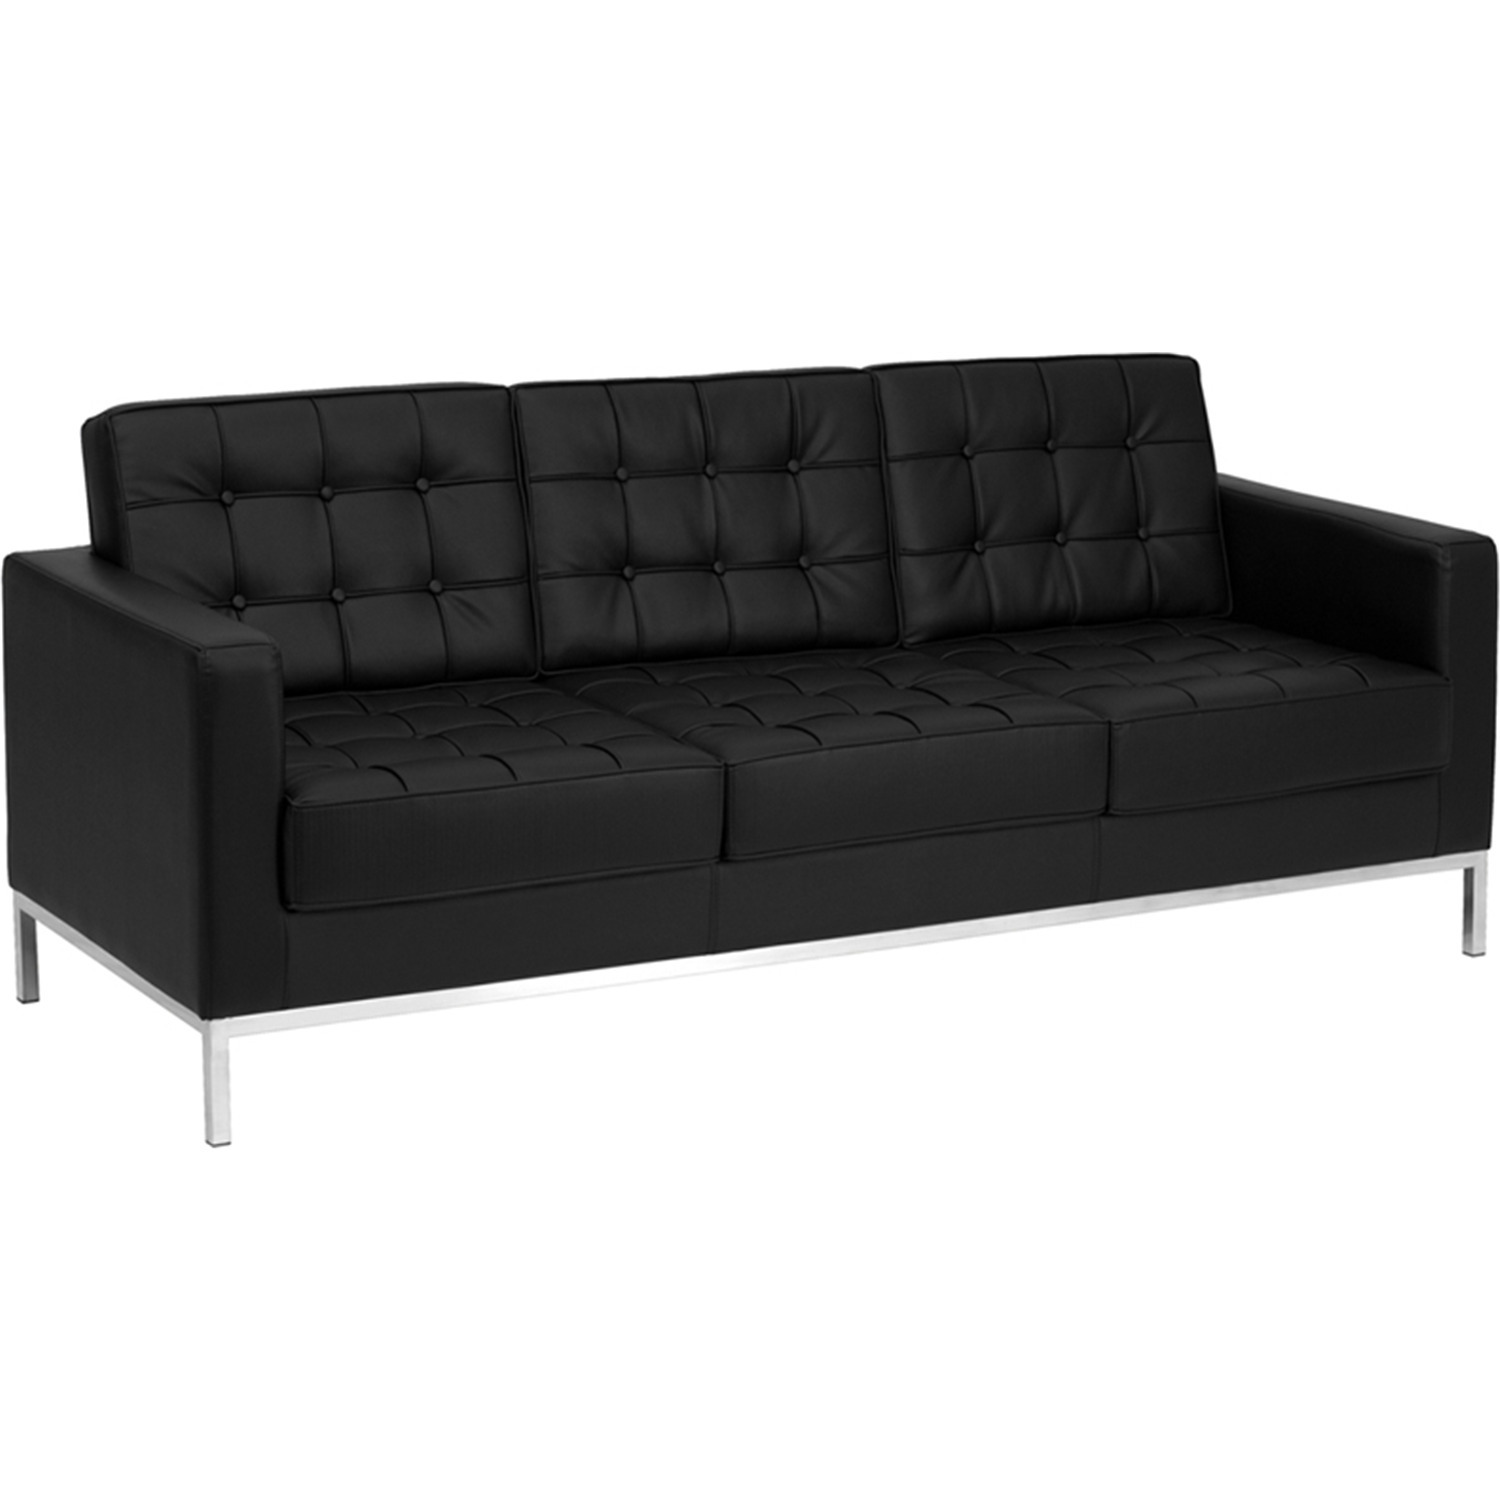 Flash furniture hercules lacey series contemporary black leather sofa with stainless steel frame Steel frame sofa